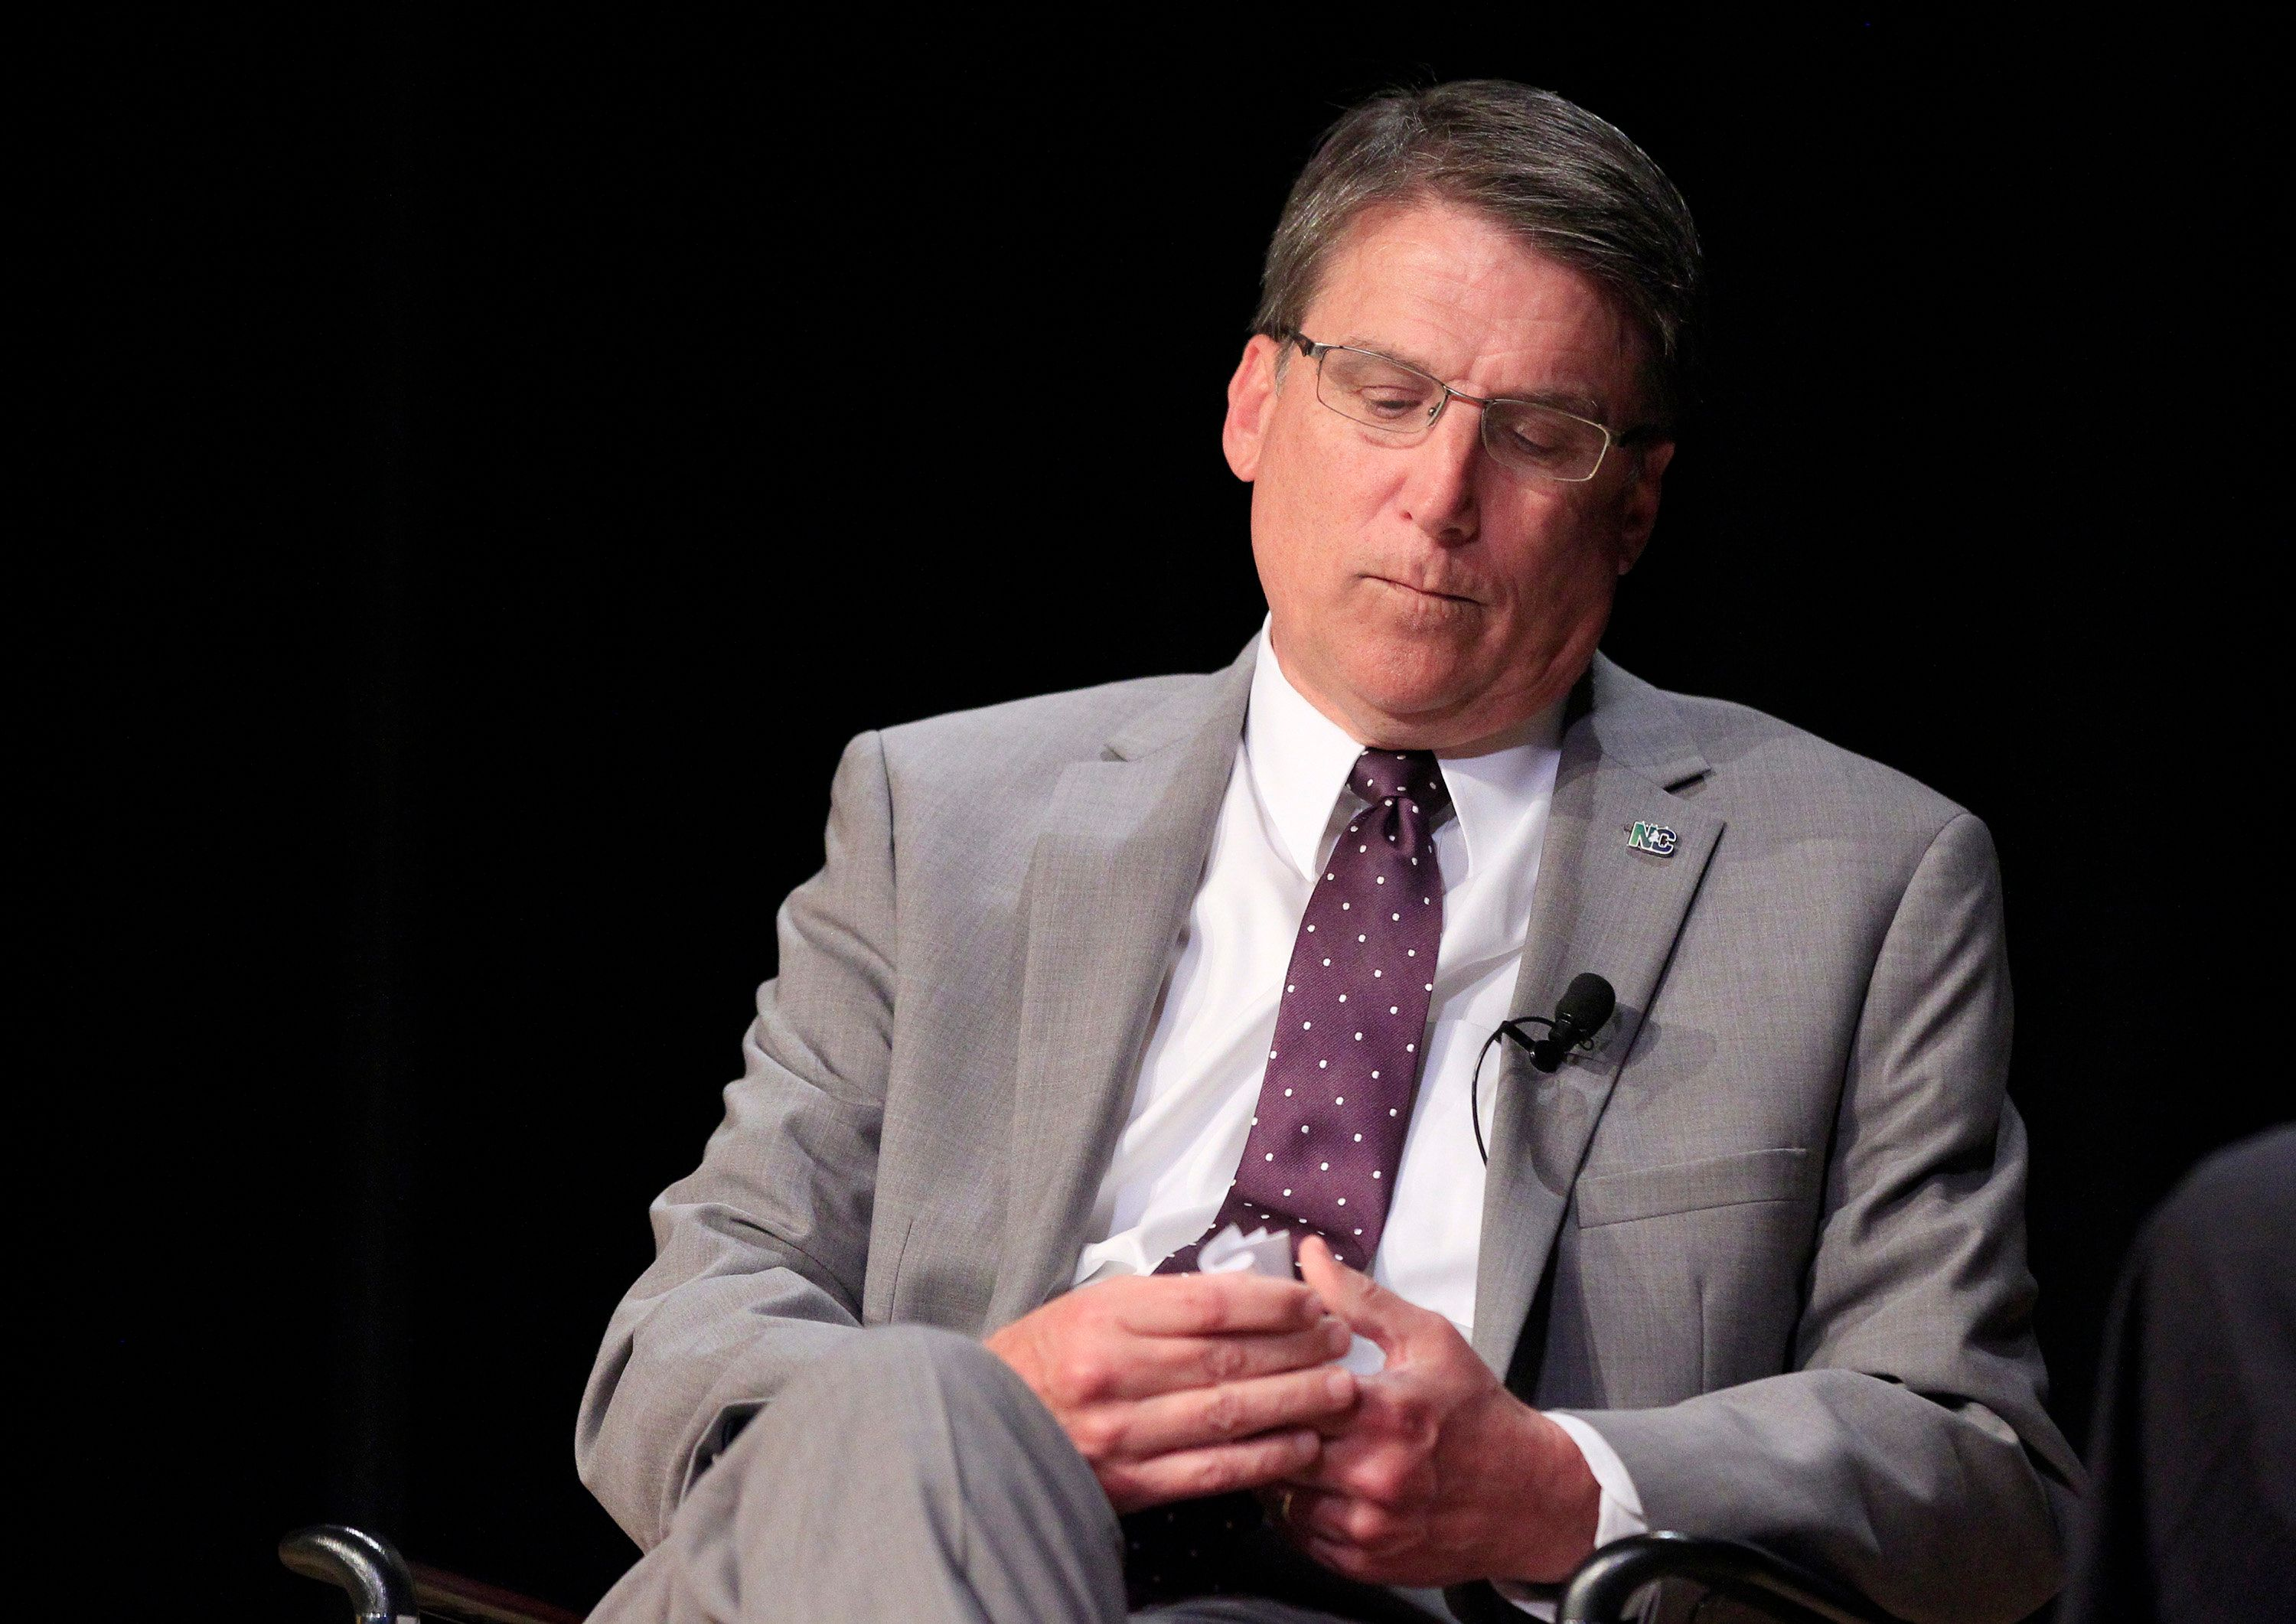 North Carolina Gov. Pat McCrory listens to a question from Tim Boyum during a question and answer session at the N.C. Chamber Annual Government Affairs Conference at the N.C. Museum of History in Raleigh, N.C., on Wednesday, May 4, 2016. (Ethan Hyman/Raleigh News & Observer/TNS via Getty Images)